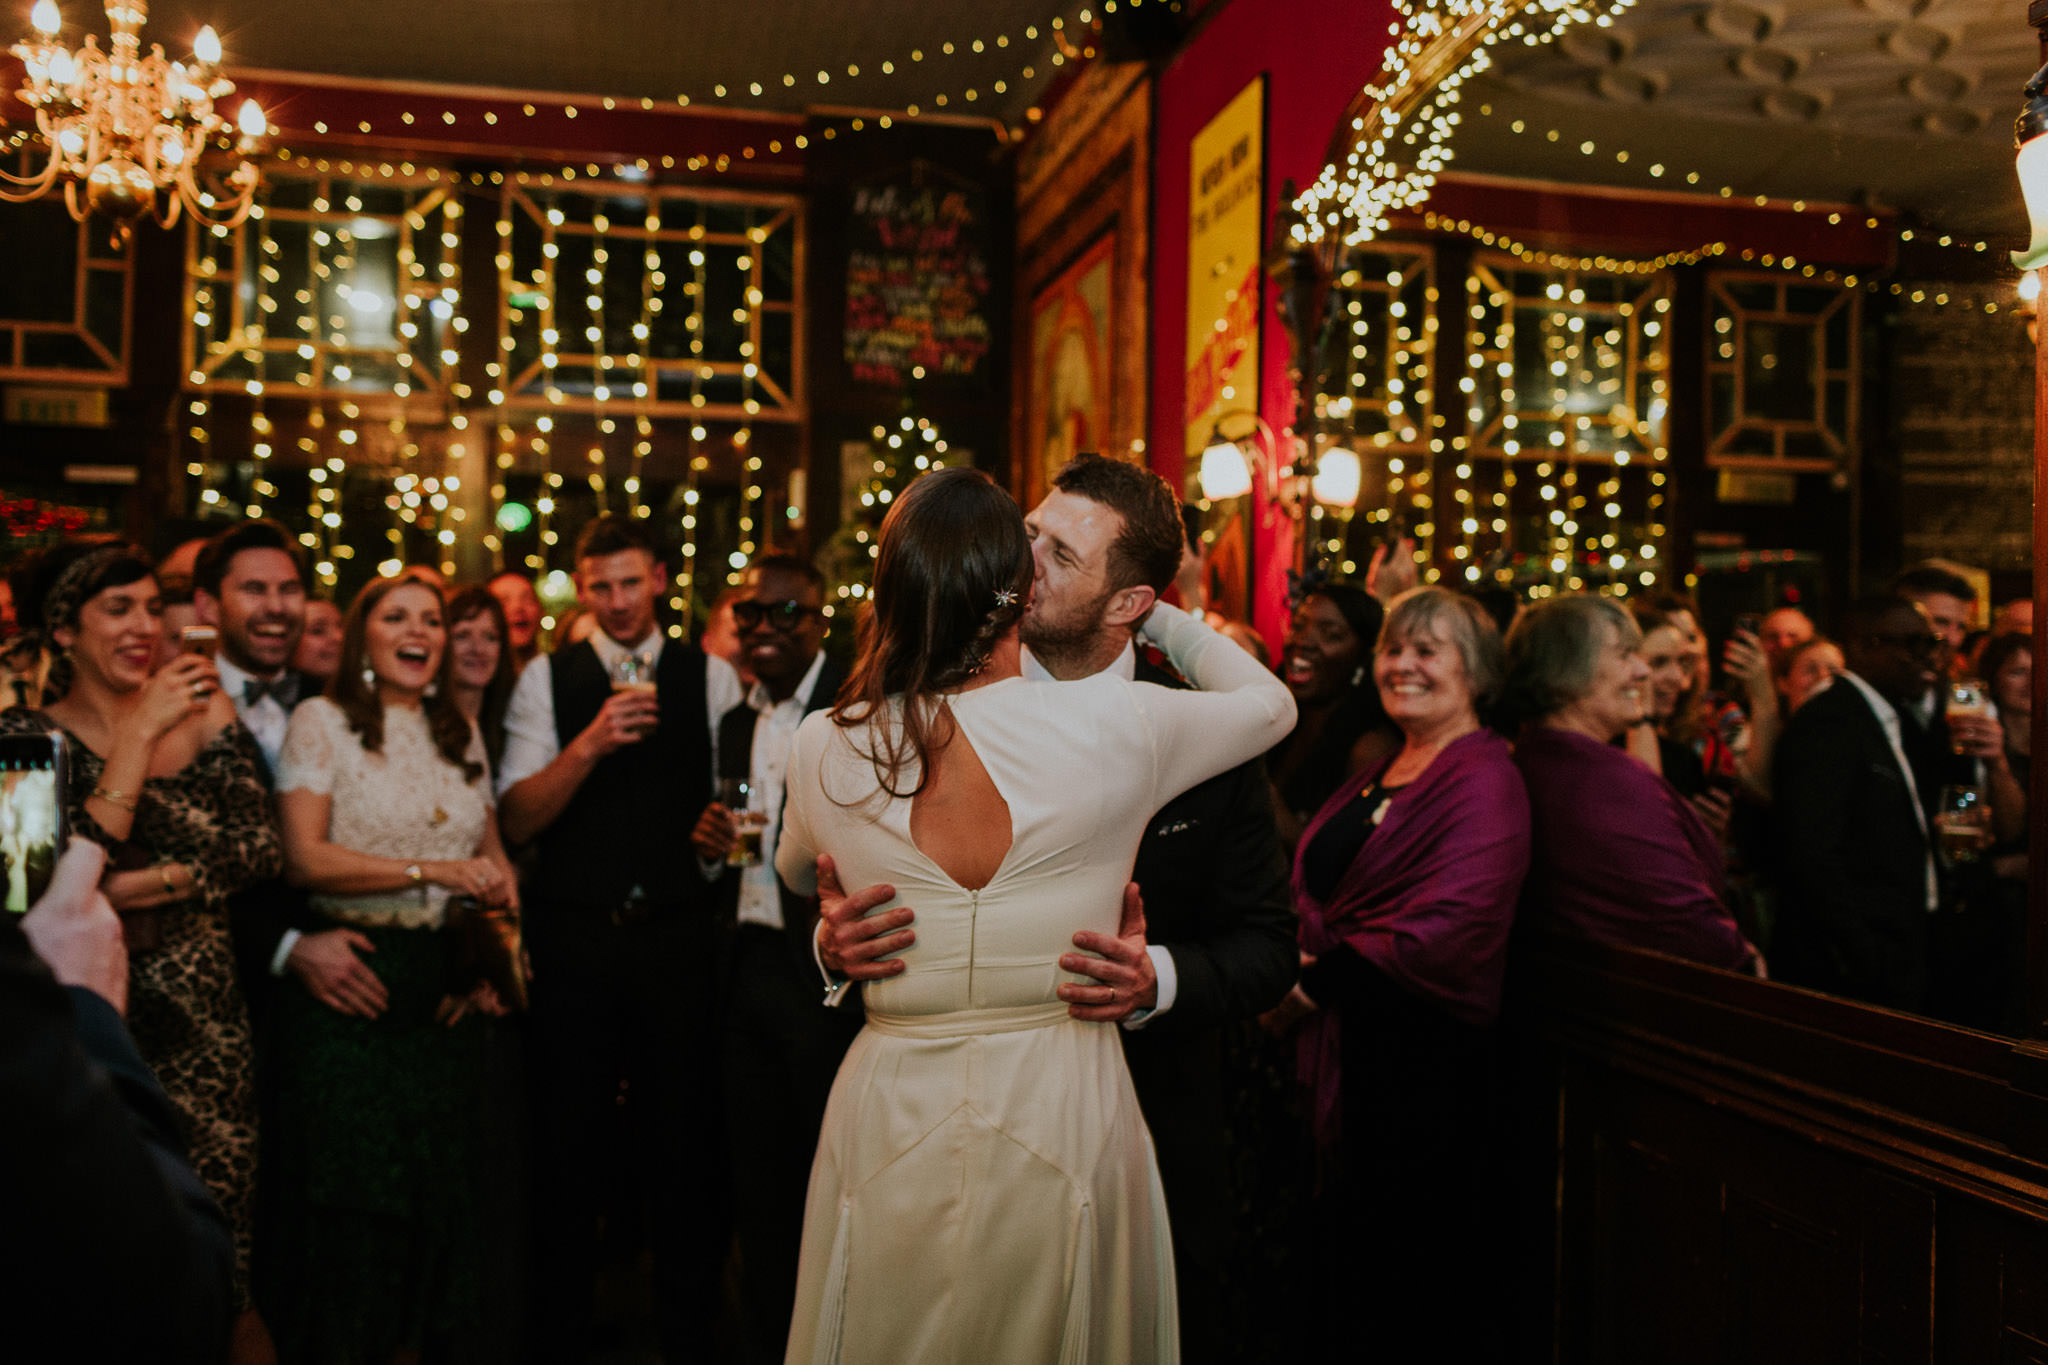 Bride and groom having a first dance at Peasant pub